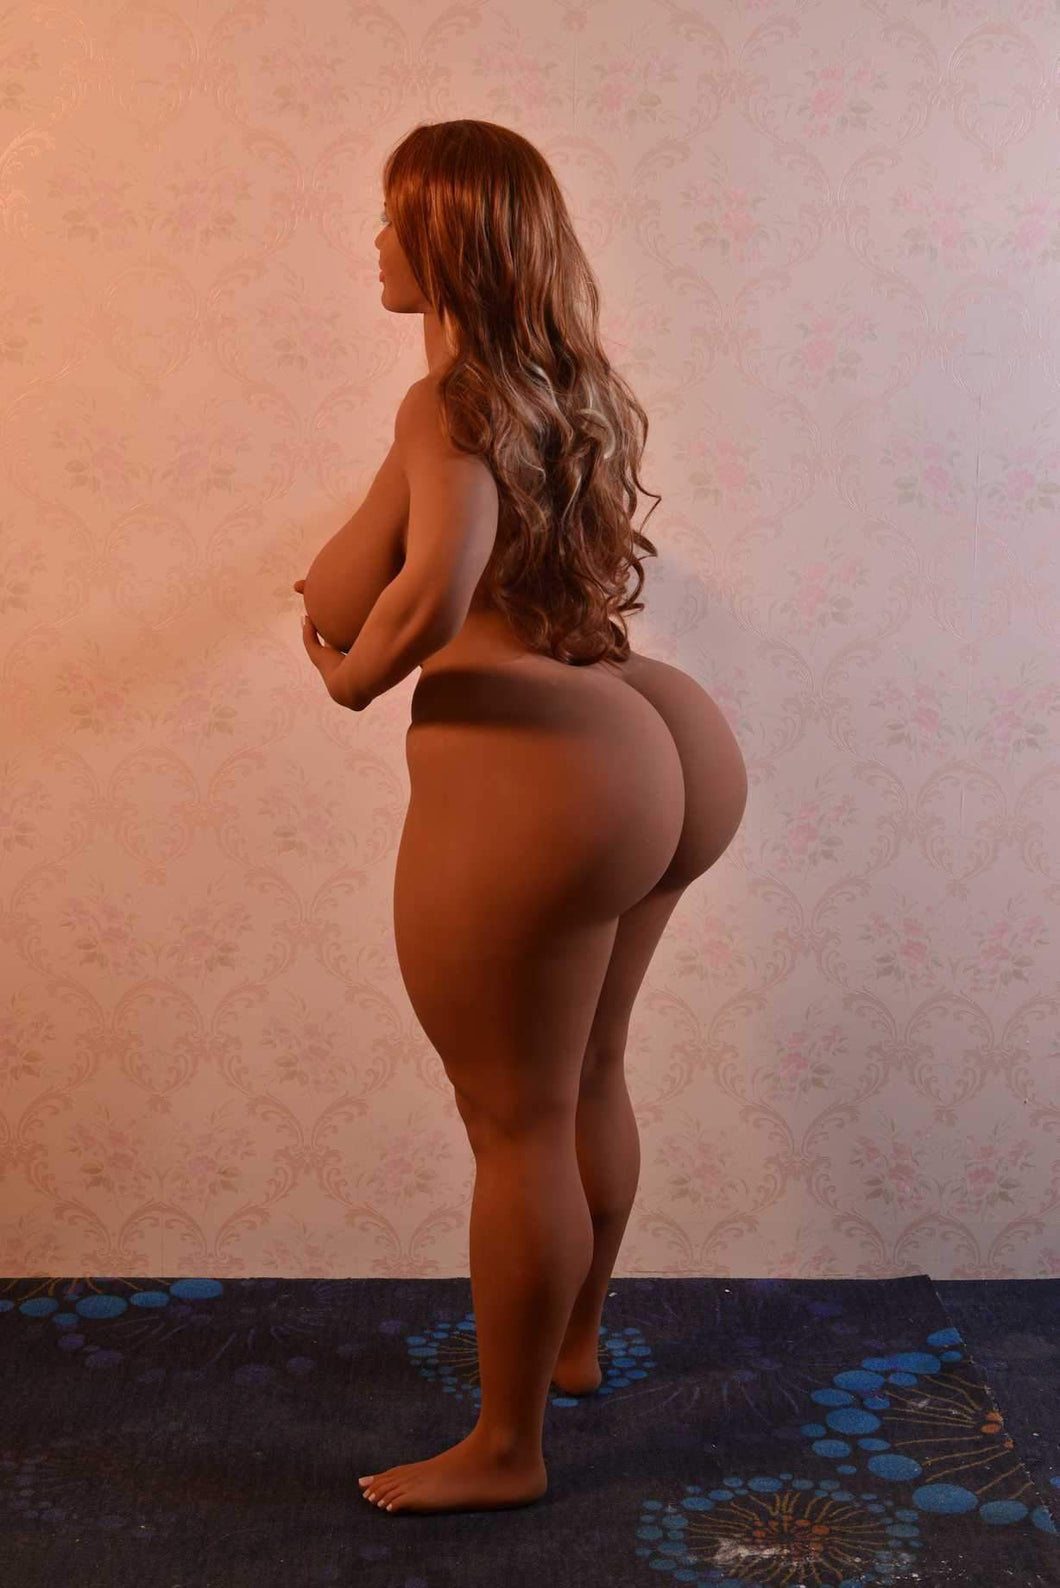 grosse doll sex poupee chubby big ass sexdolls